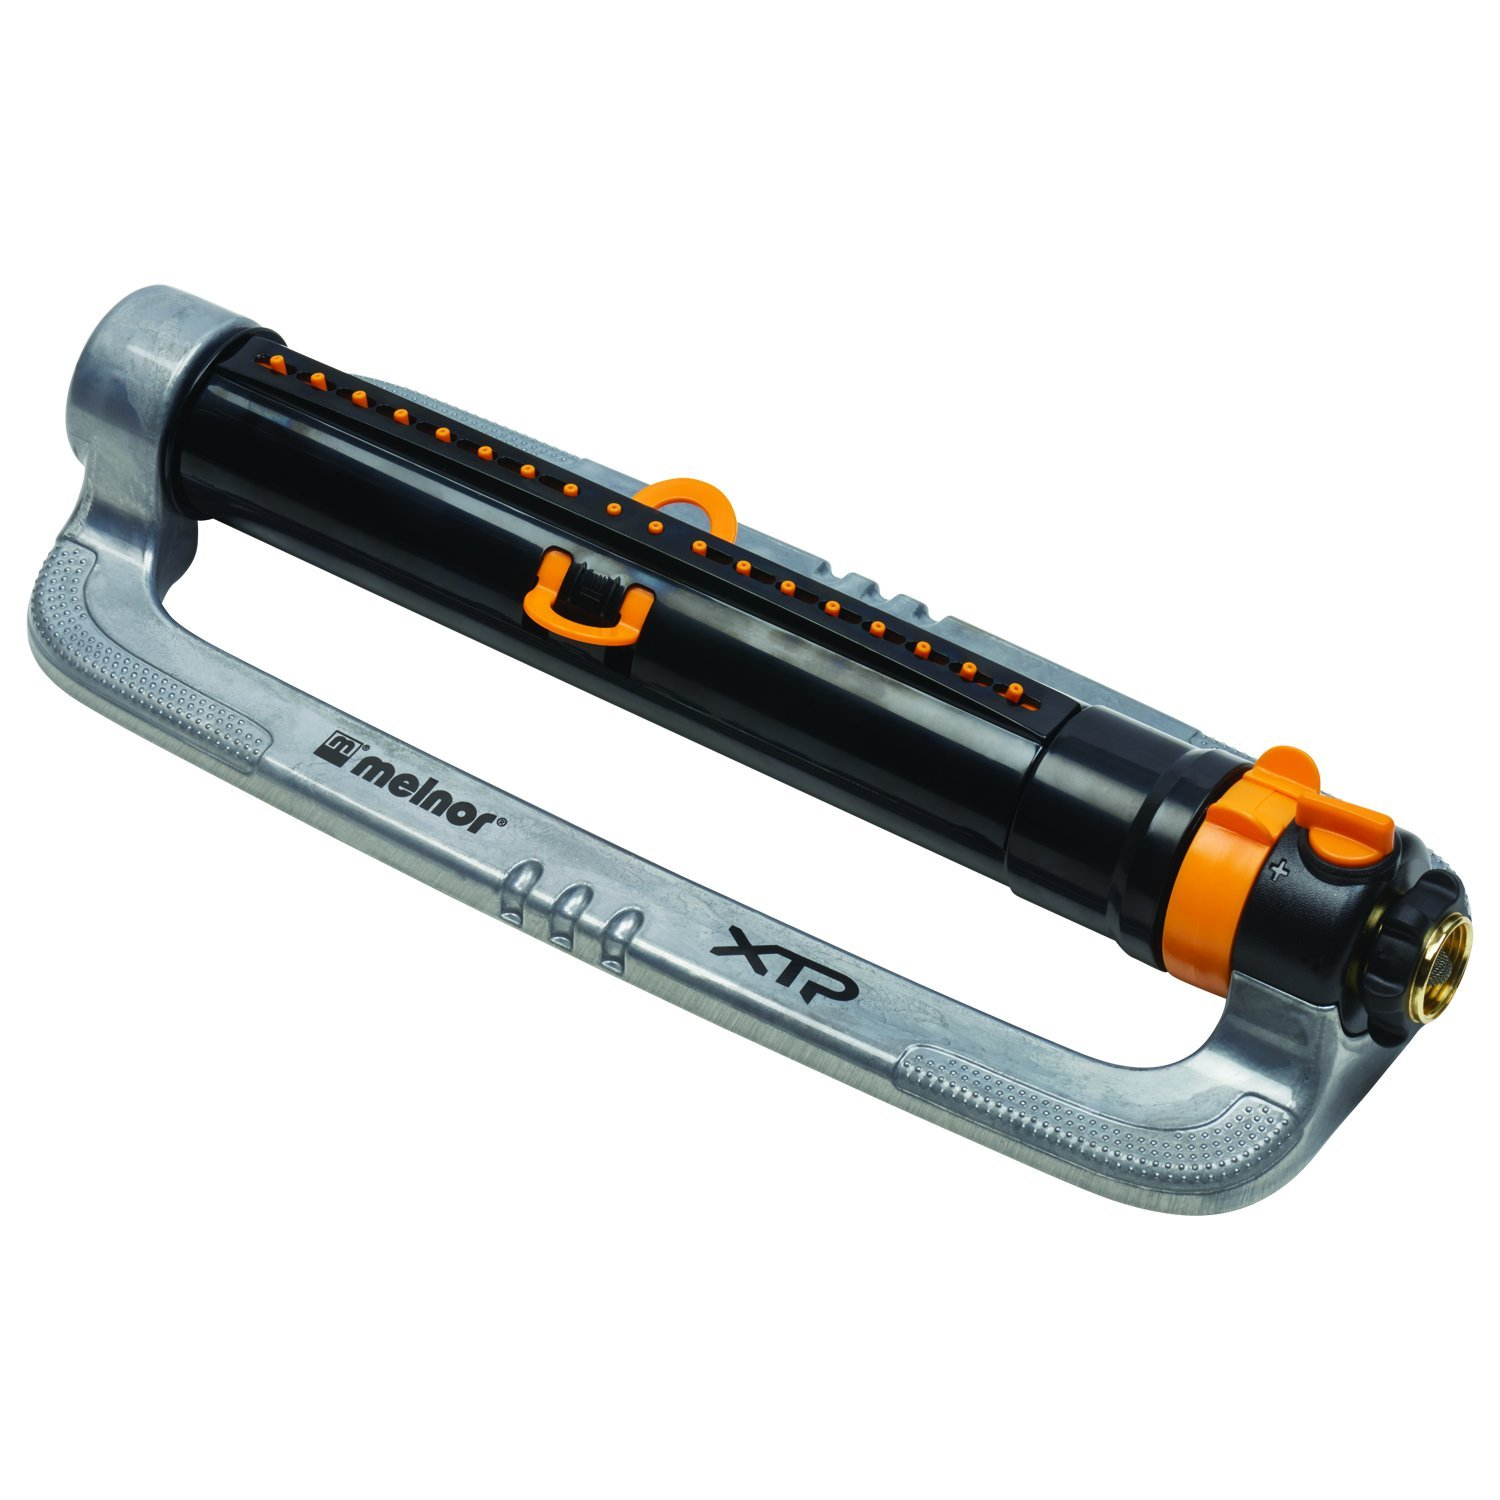 Melnor XT Turbo Oscillating Sprinkler